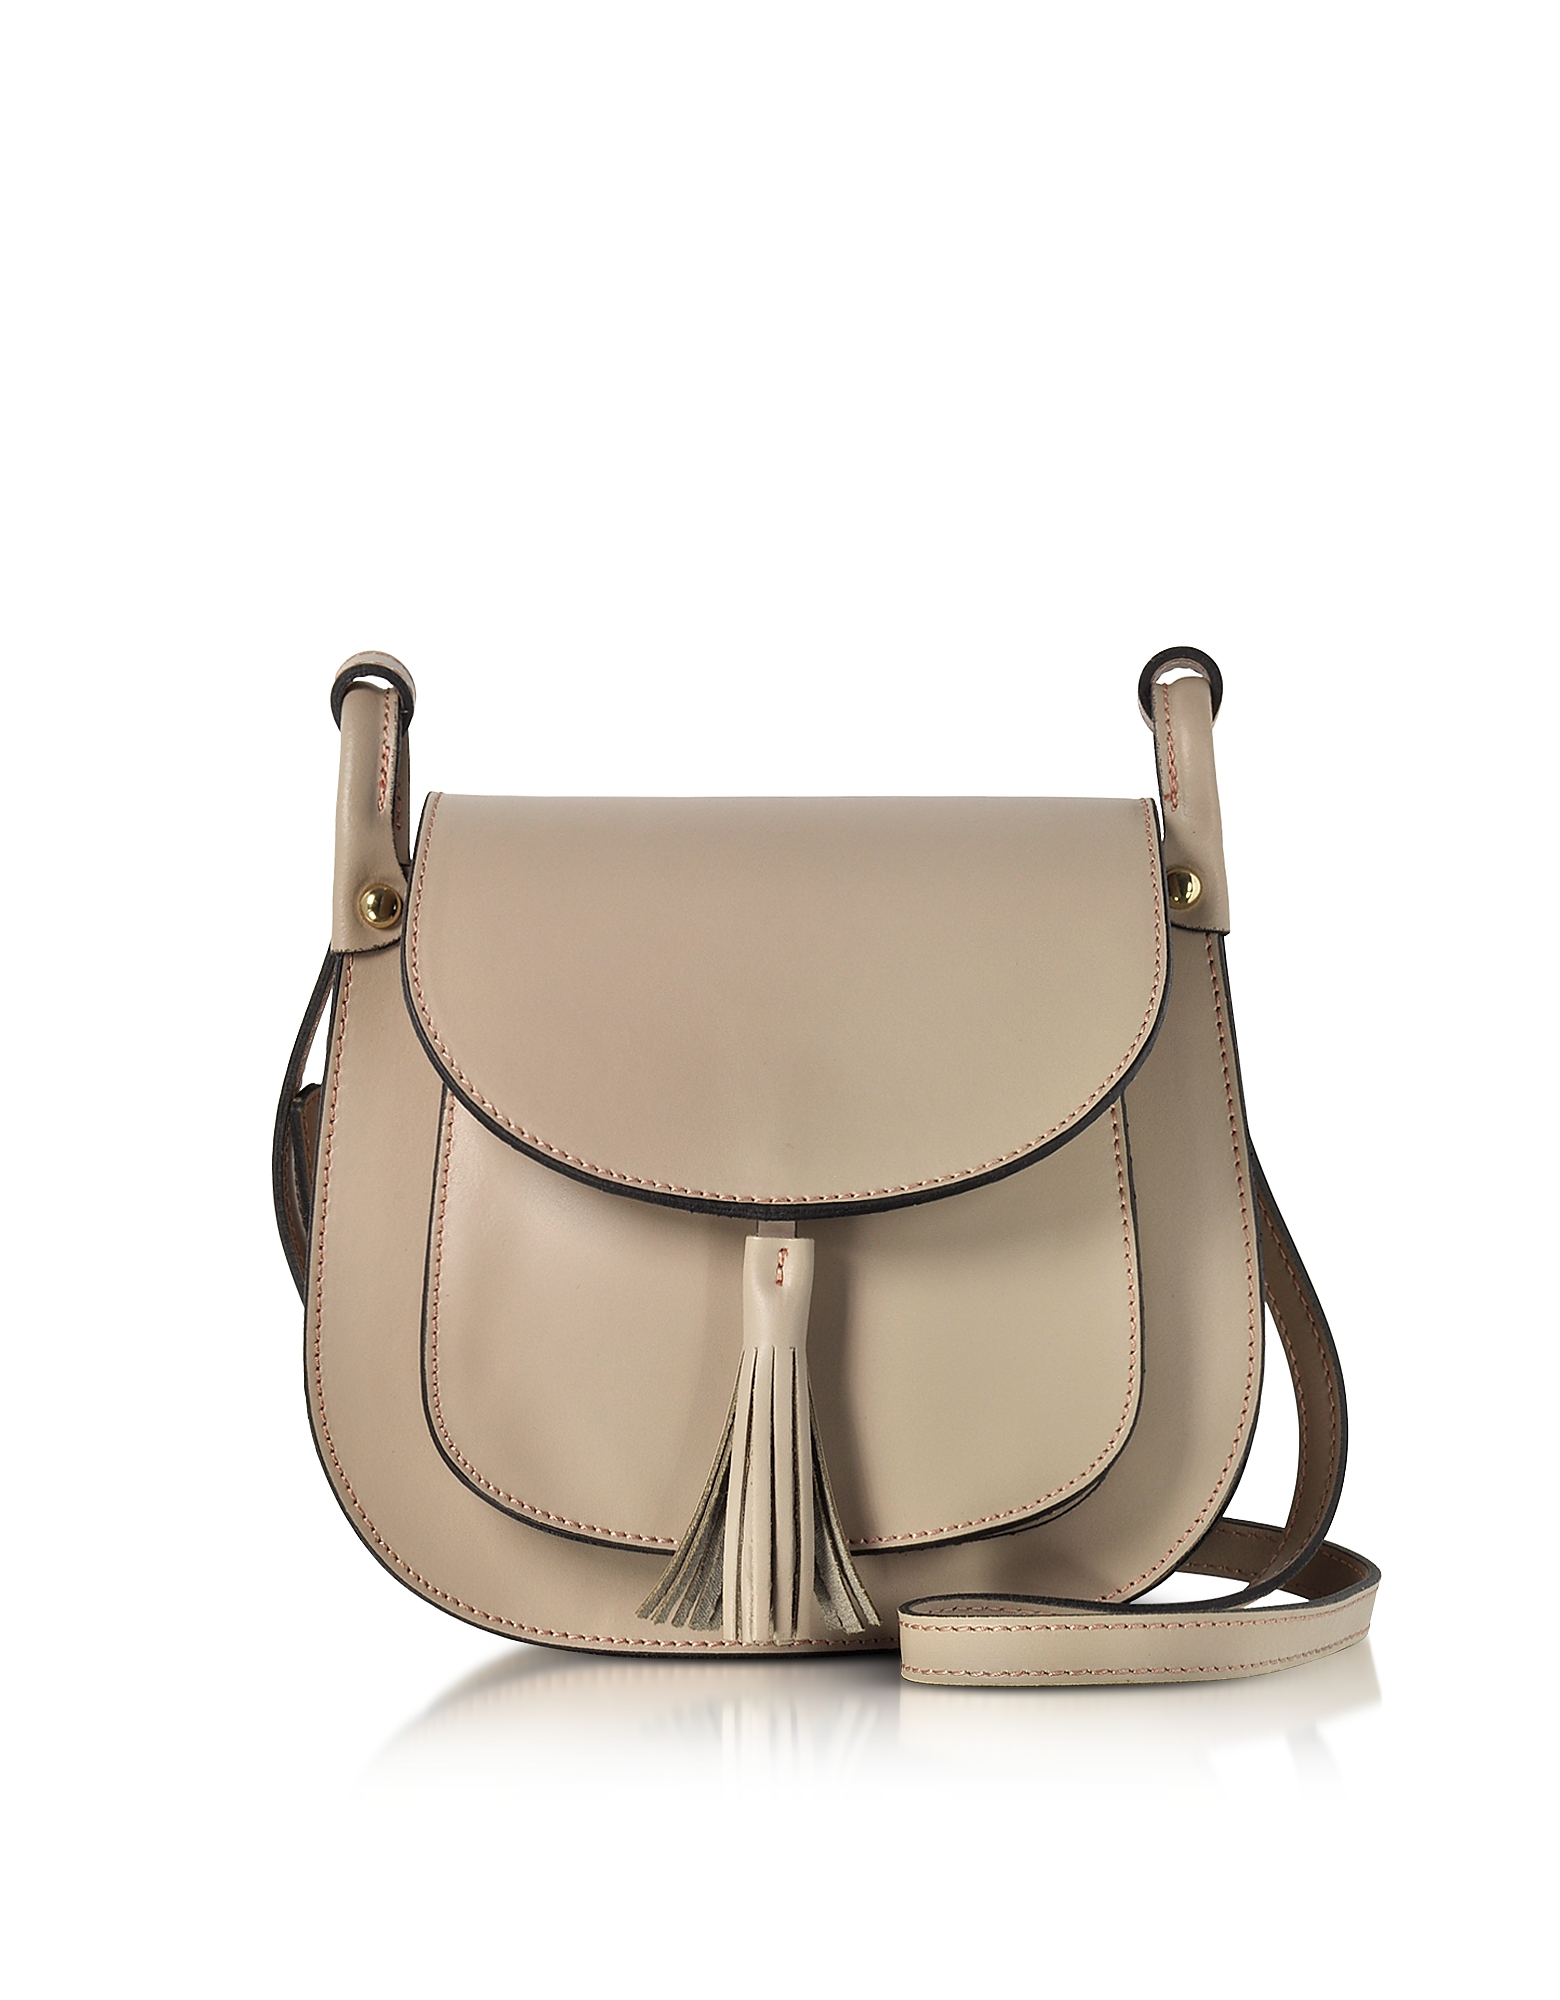 Le Parmentier Handbags, Buttercup Nude Leather Shoulder Bag w/Tassel